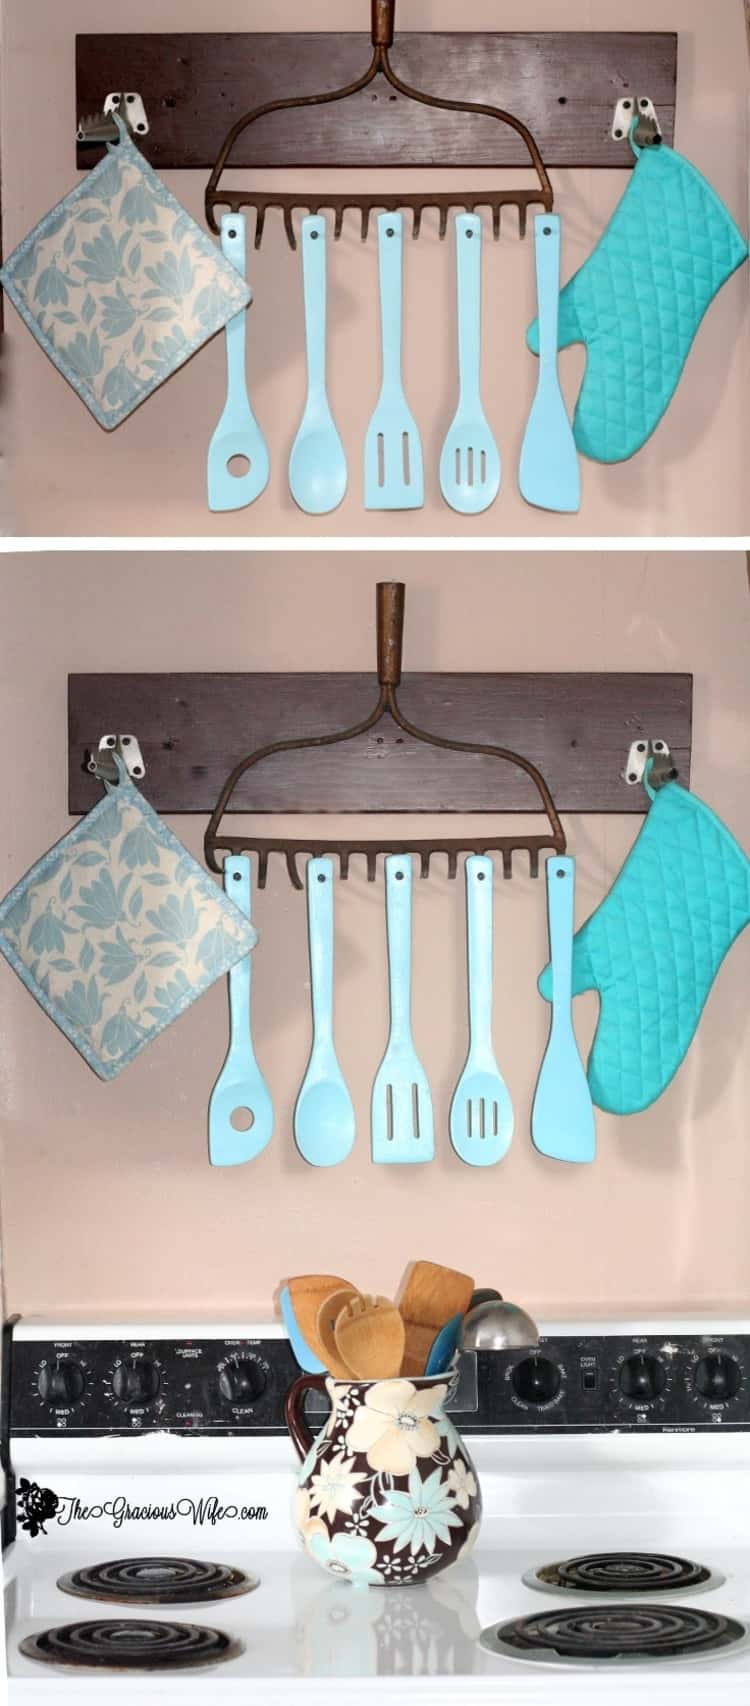 an old rake turned into a utensil holder with blue spoons hanging on it and potholder on either side, above a white stove